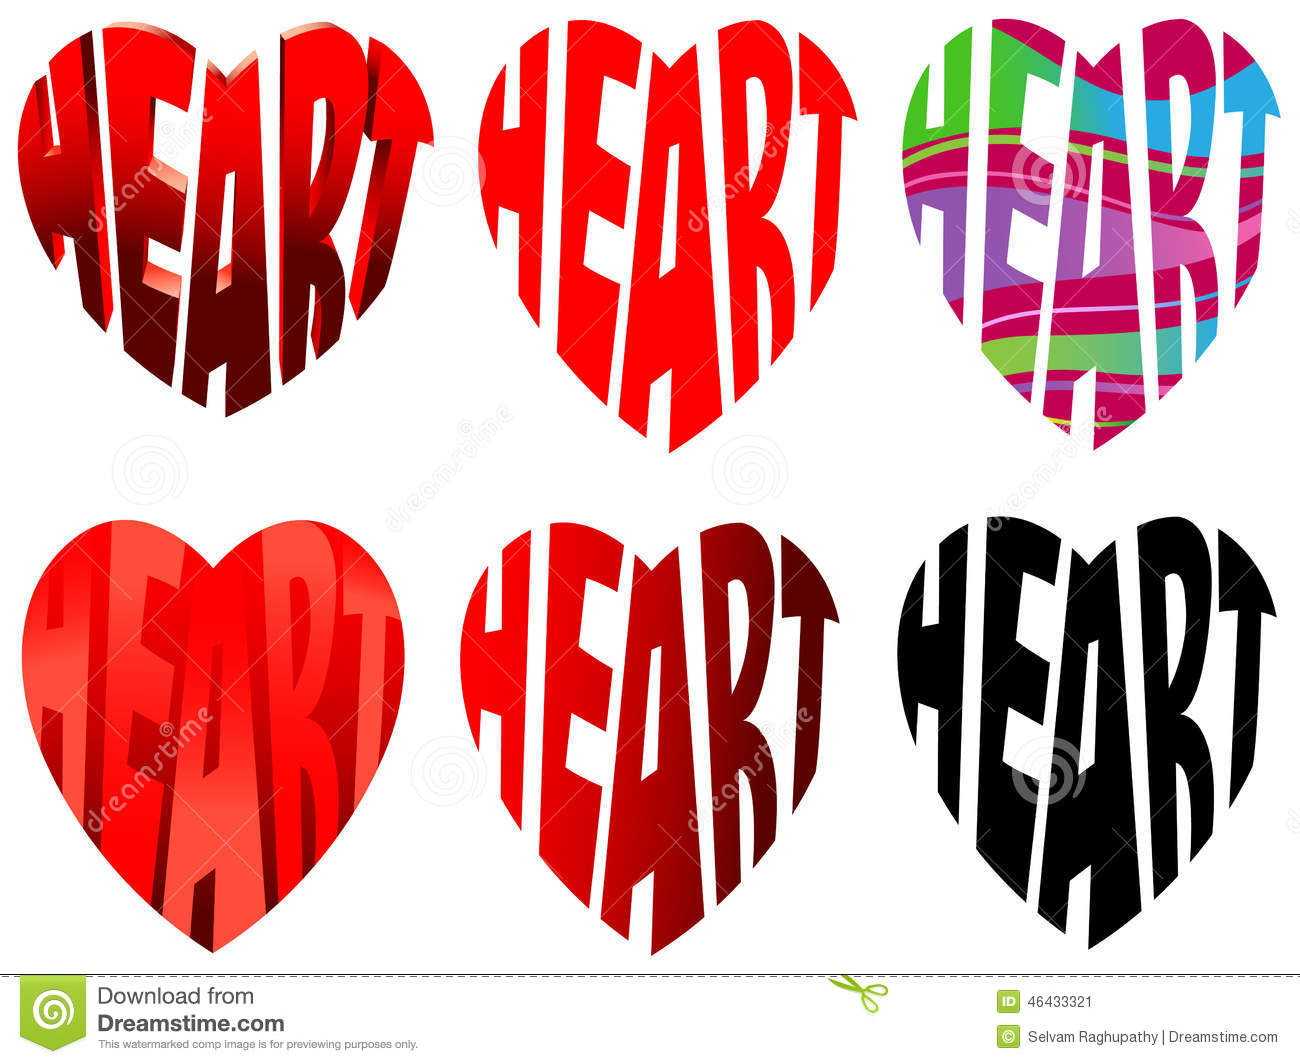 Characters Heart Stock Vector - Image: 46433321